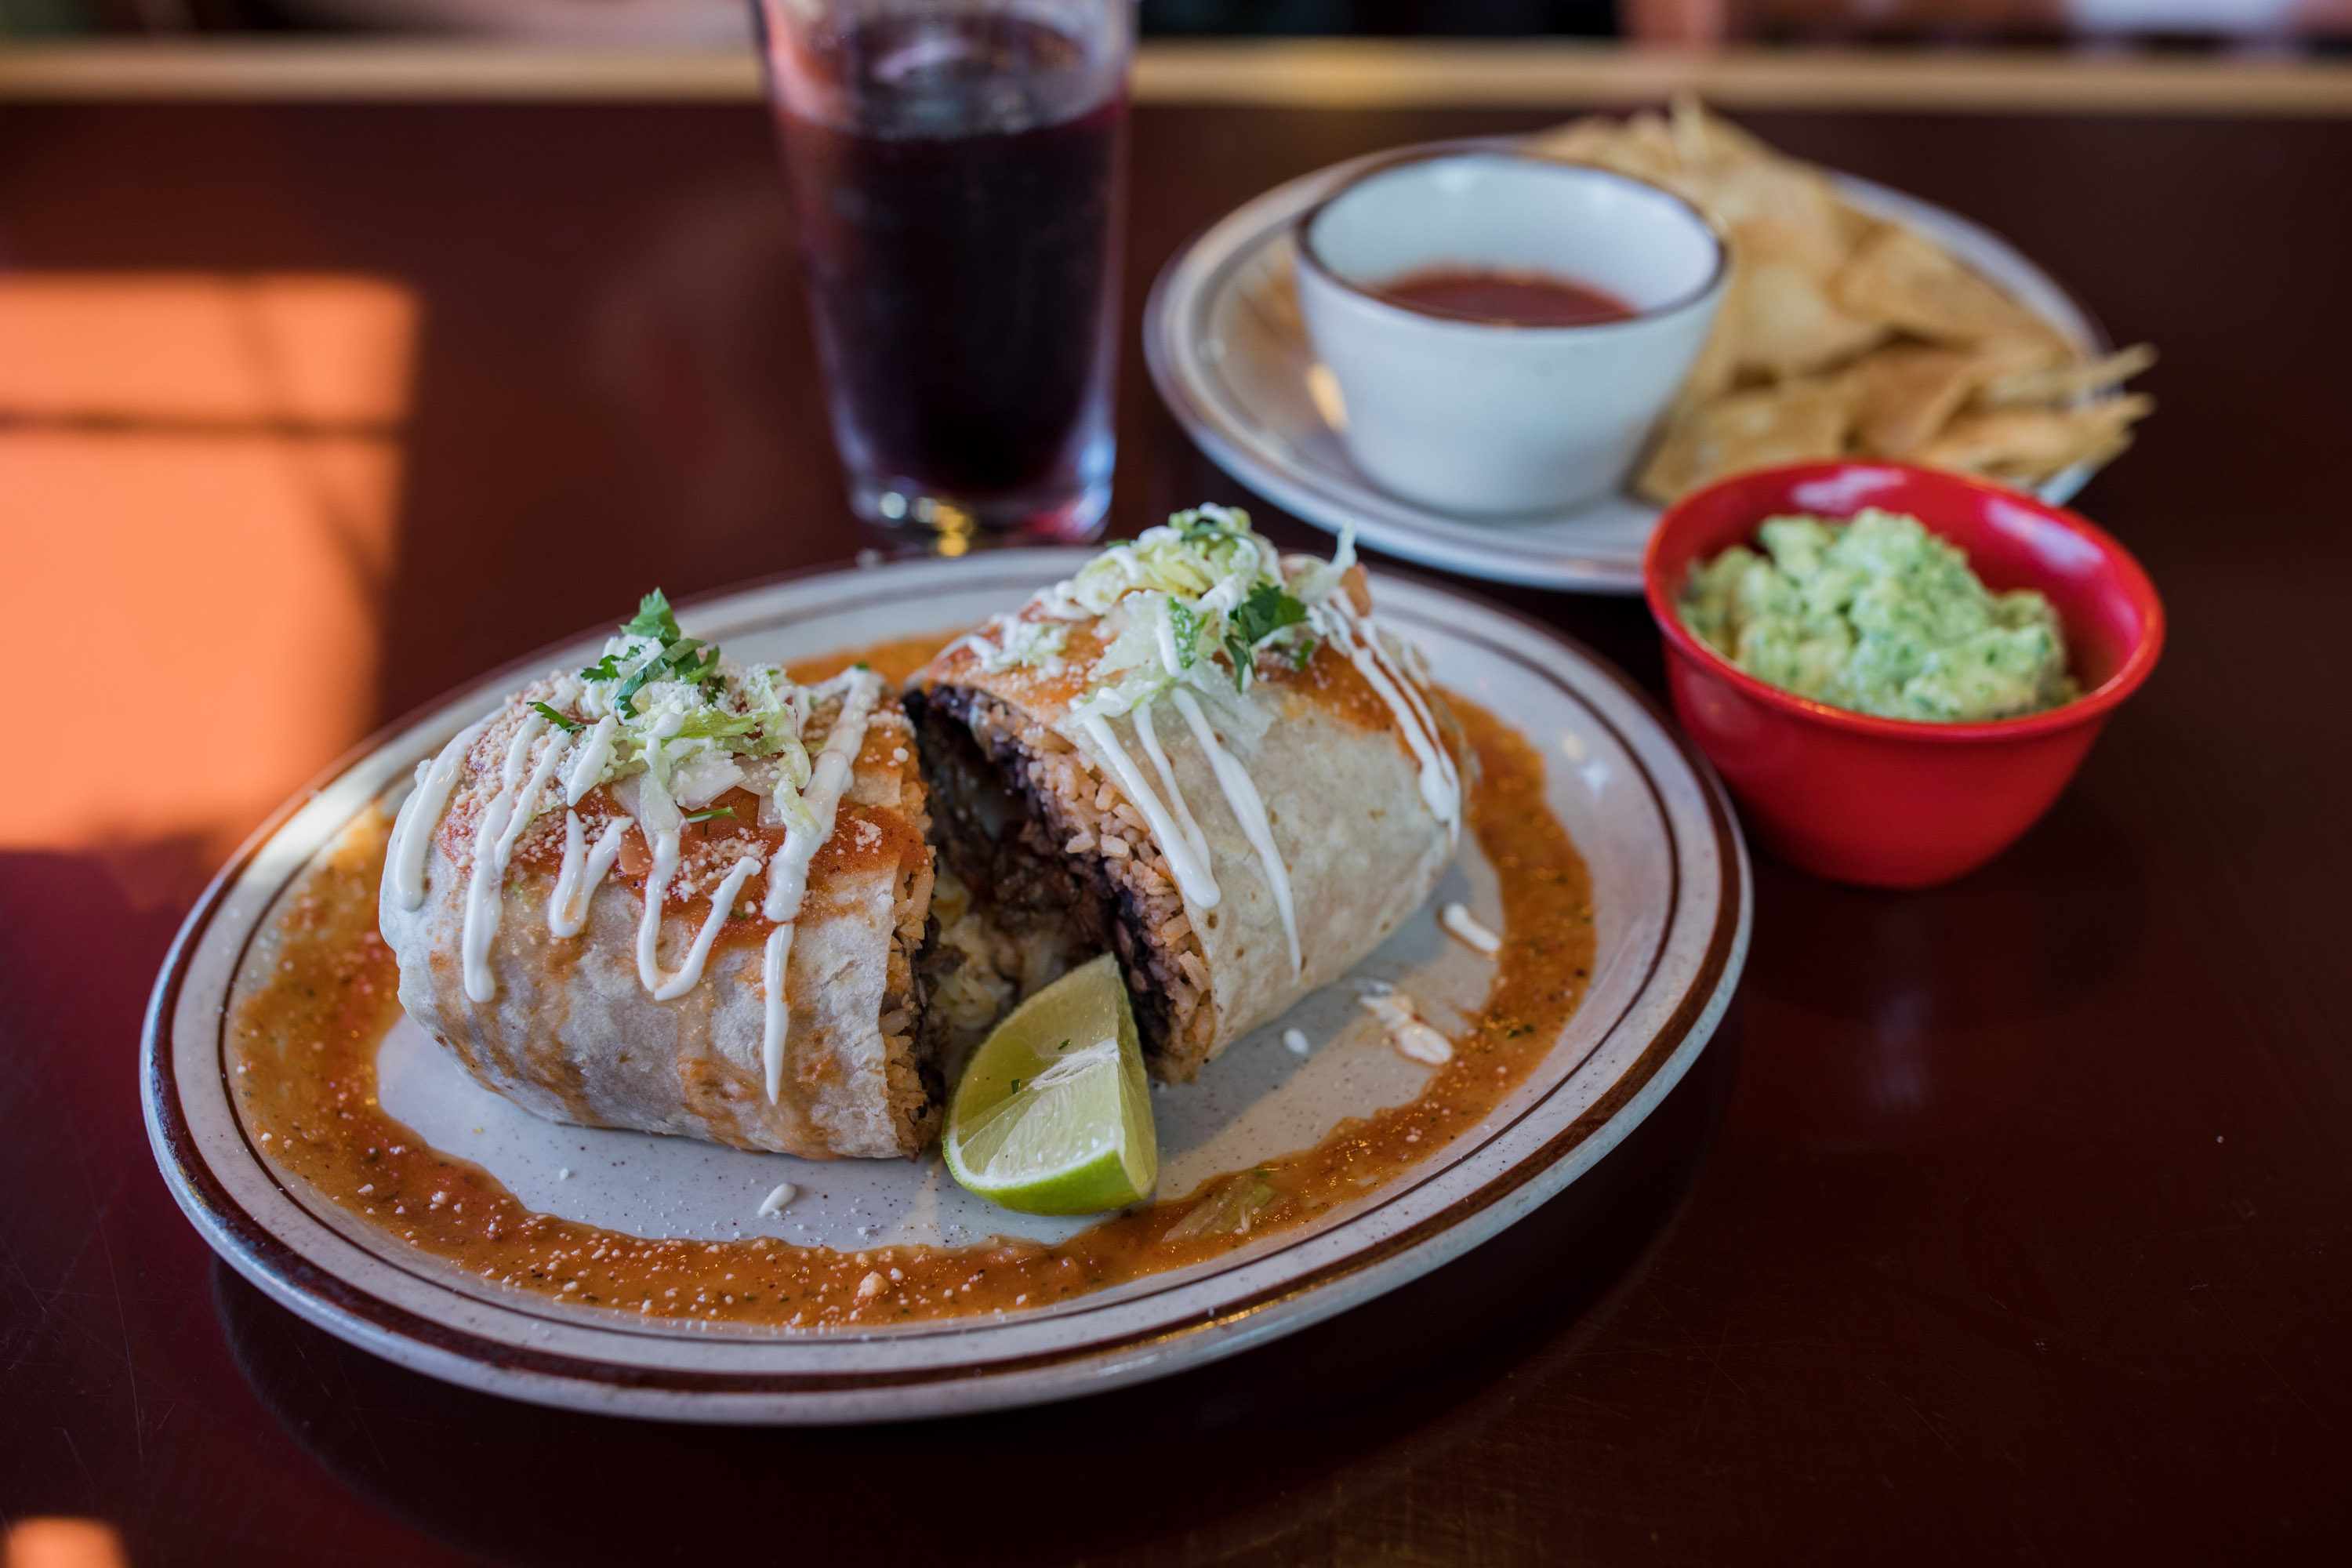 A burrito, sliced in half, on a plate with chips and salsa on the side